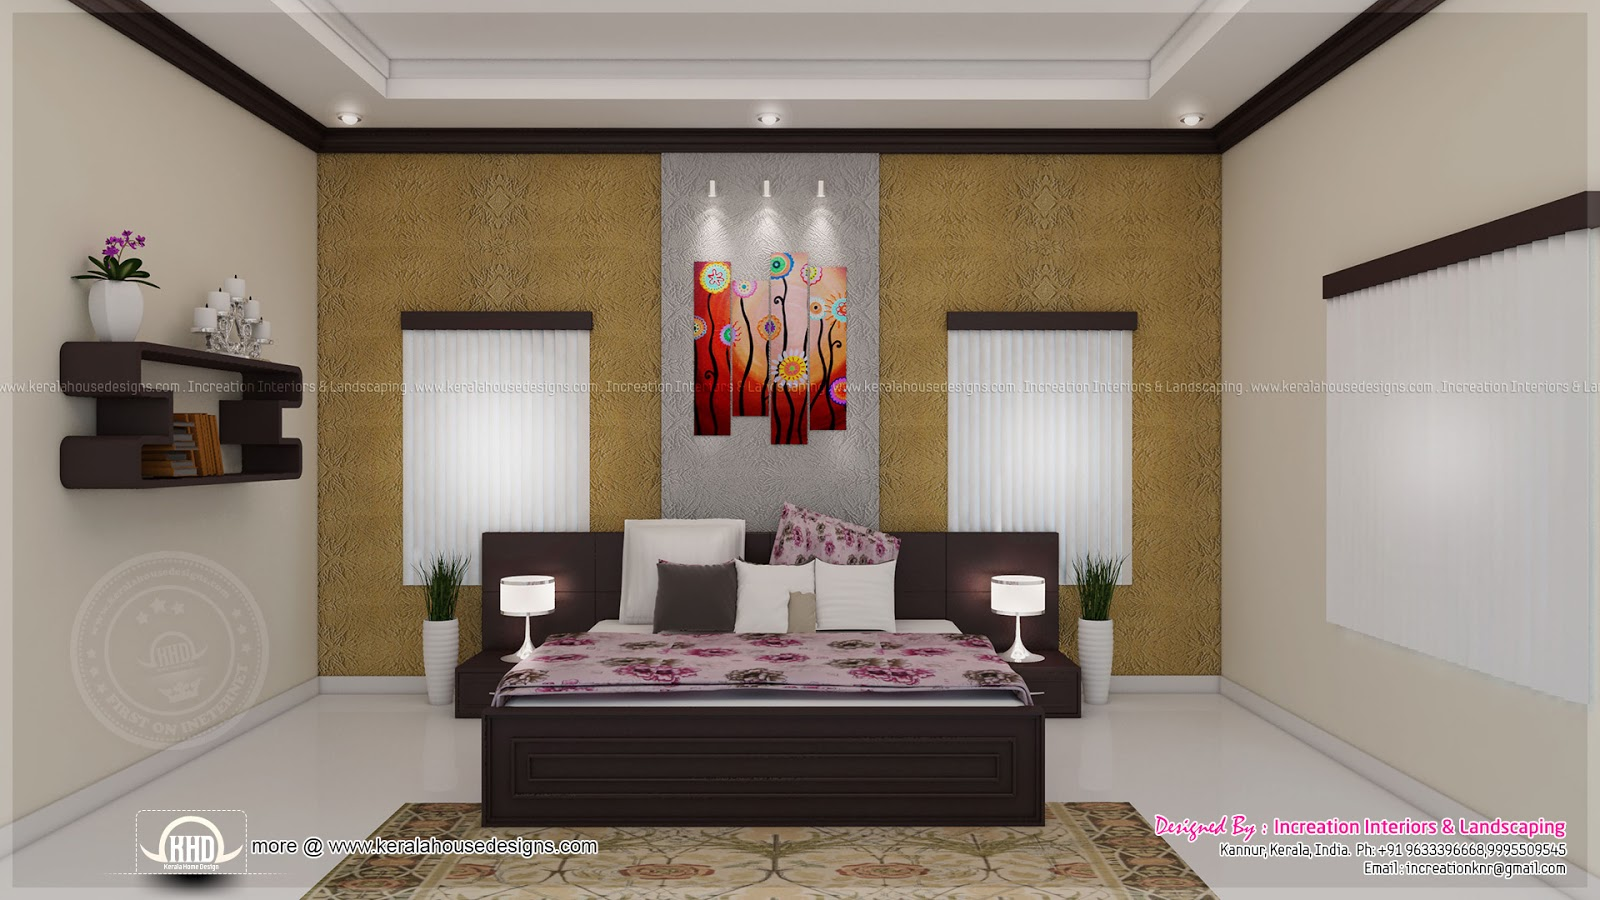 House interior ideas in 3d rendering kerala home design for Home design interior design